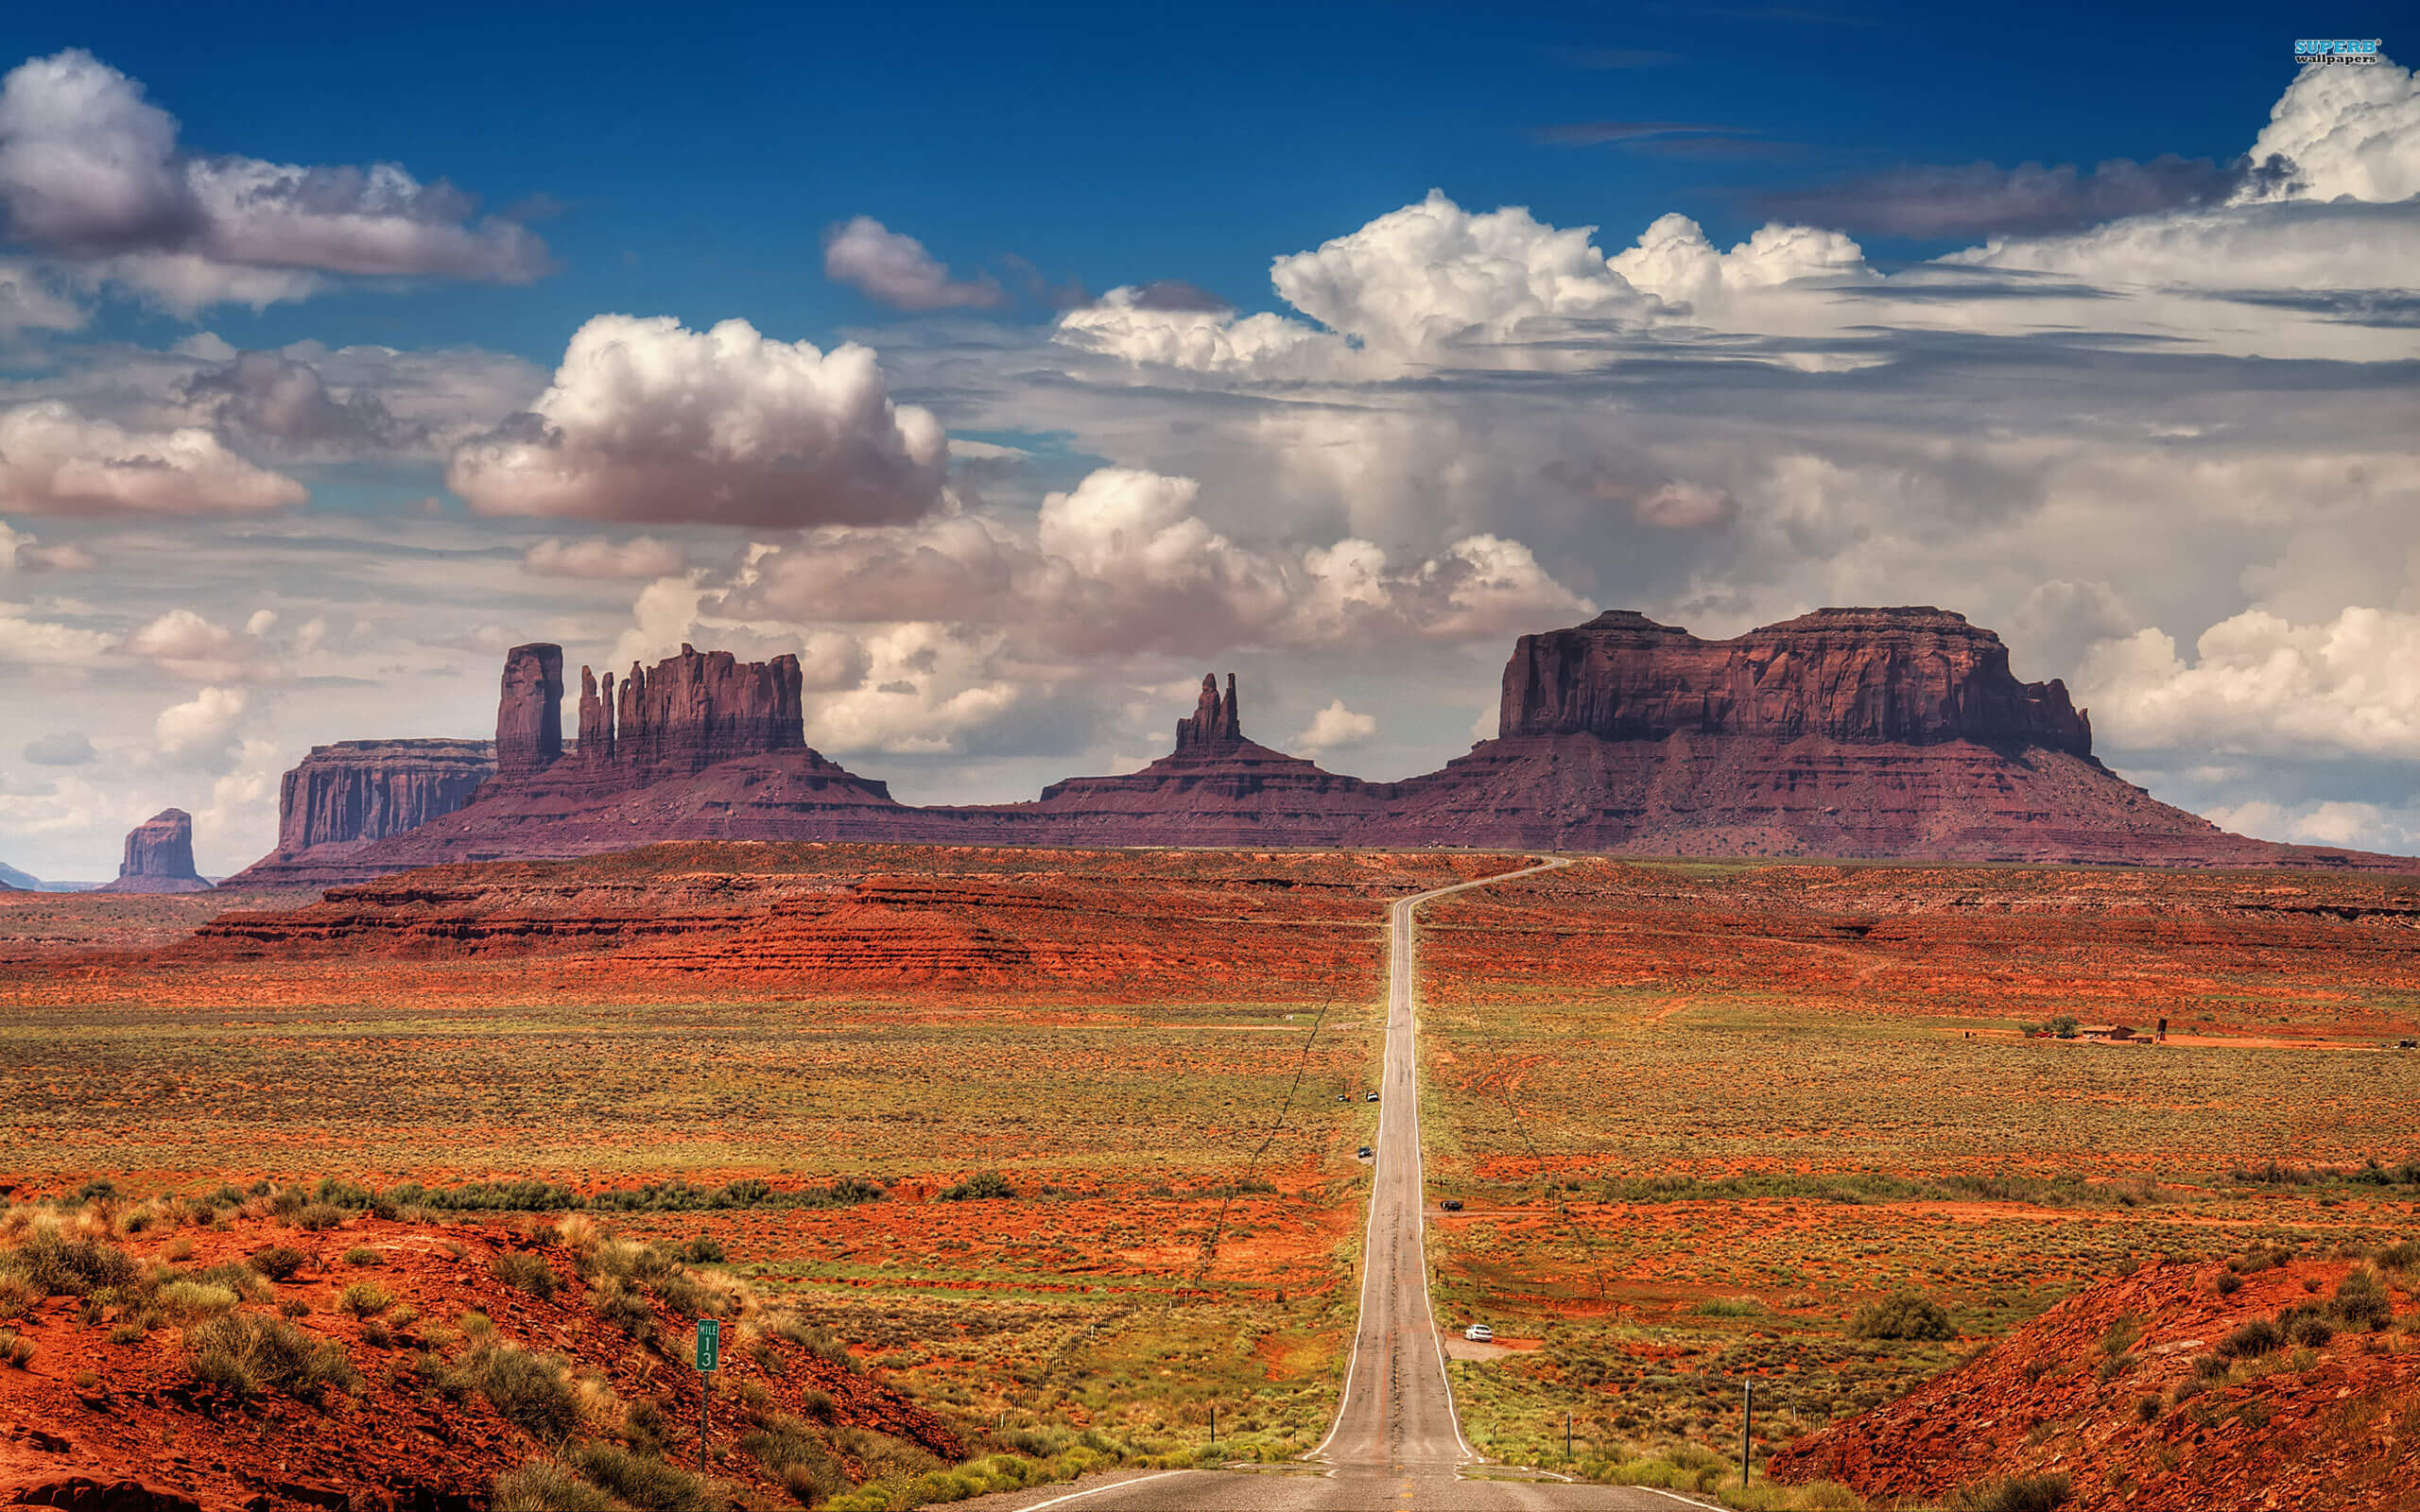 Monument Valley in the background and a road to it in the foreground.